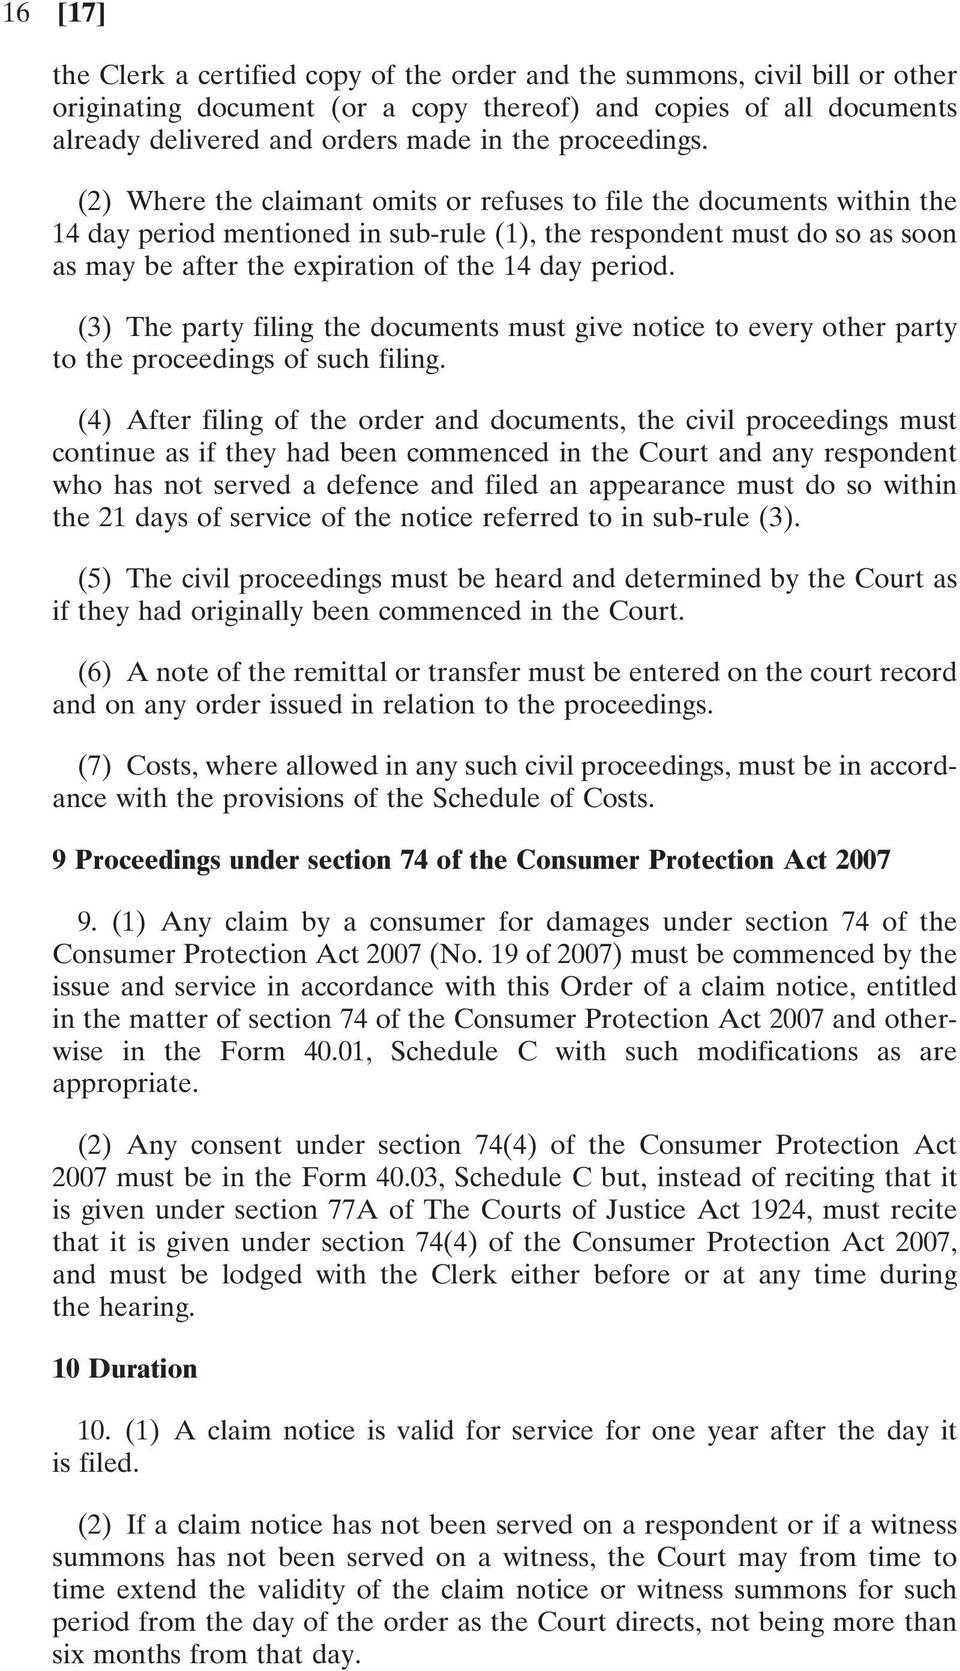 (2) Where the claimant omits or refuses to file the documents within the 14 day period mentioned in sub-rule (1), the respondent must do so as soon as may be after the expiration of the 14 day period.